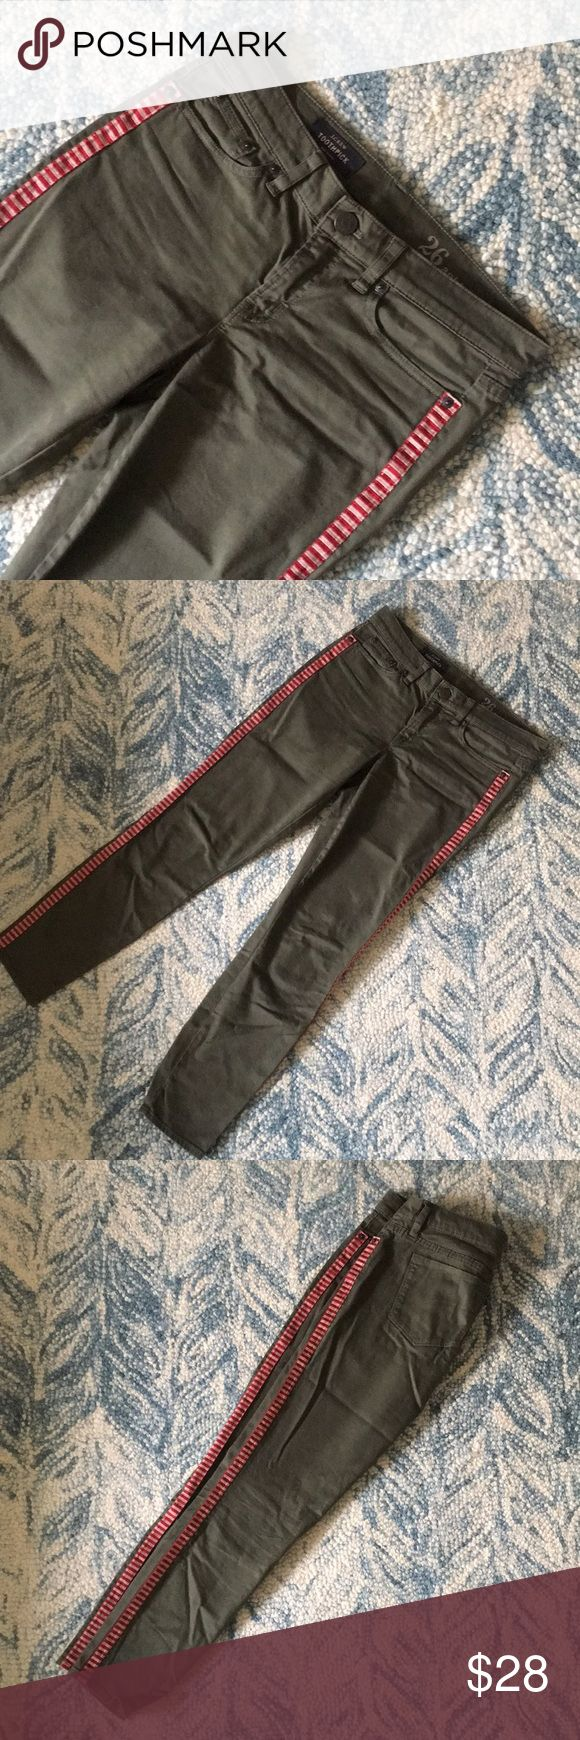 J. Crew Olive Green Tuxedo Stripe Pants Super cool olive green pants with red tuxedo stripes down the leg. Can be dressed up or down - looks especially great with a denim shirt and red heels! EUC, just wrinkled from my closet 😉 J. Crew Pants